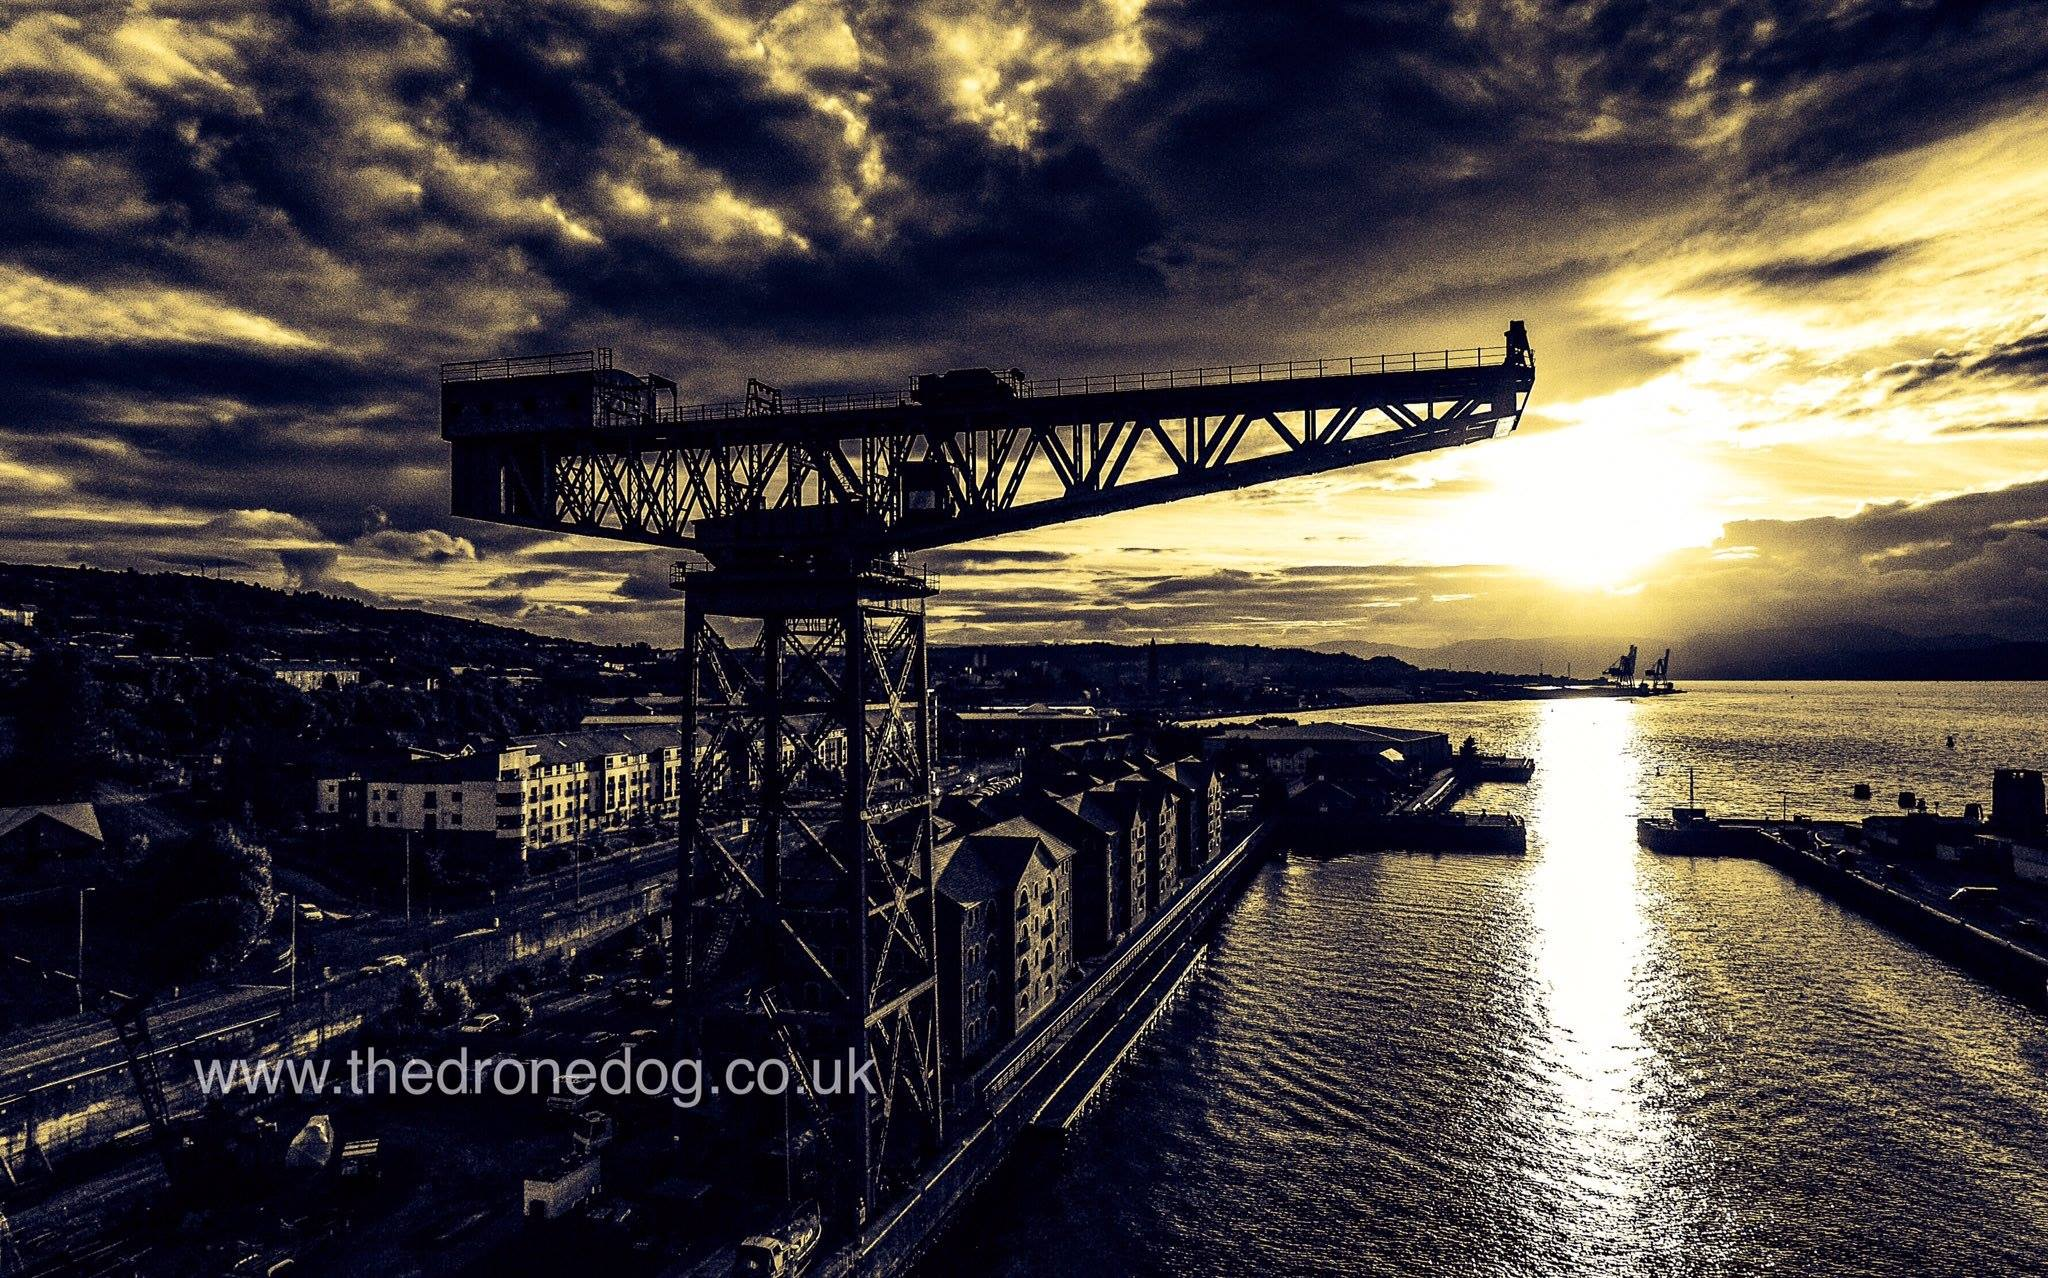 The Titan crane at Greenock. Photo by The Drone Dog